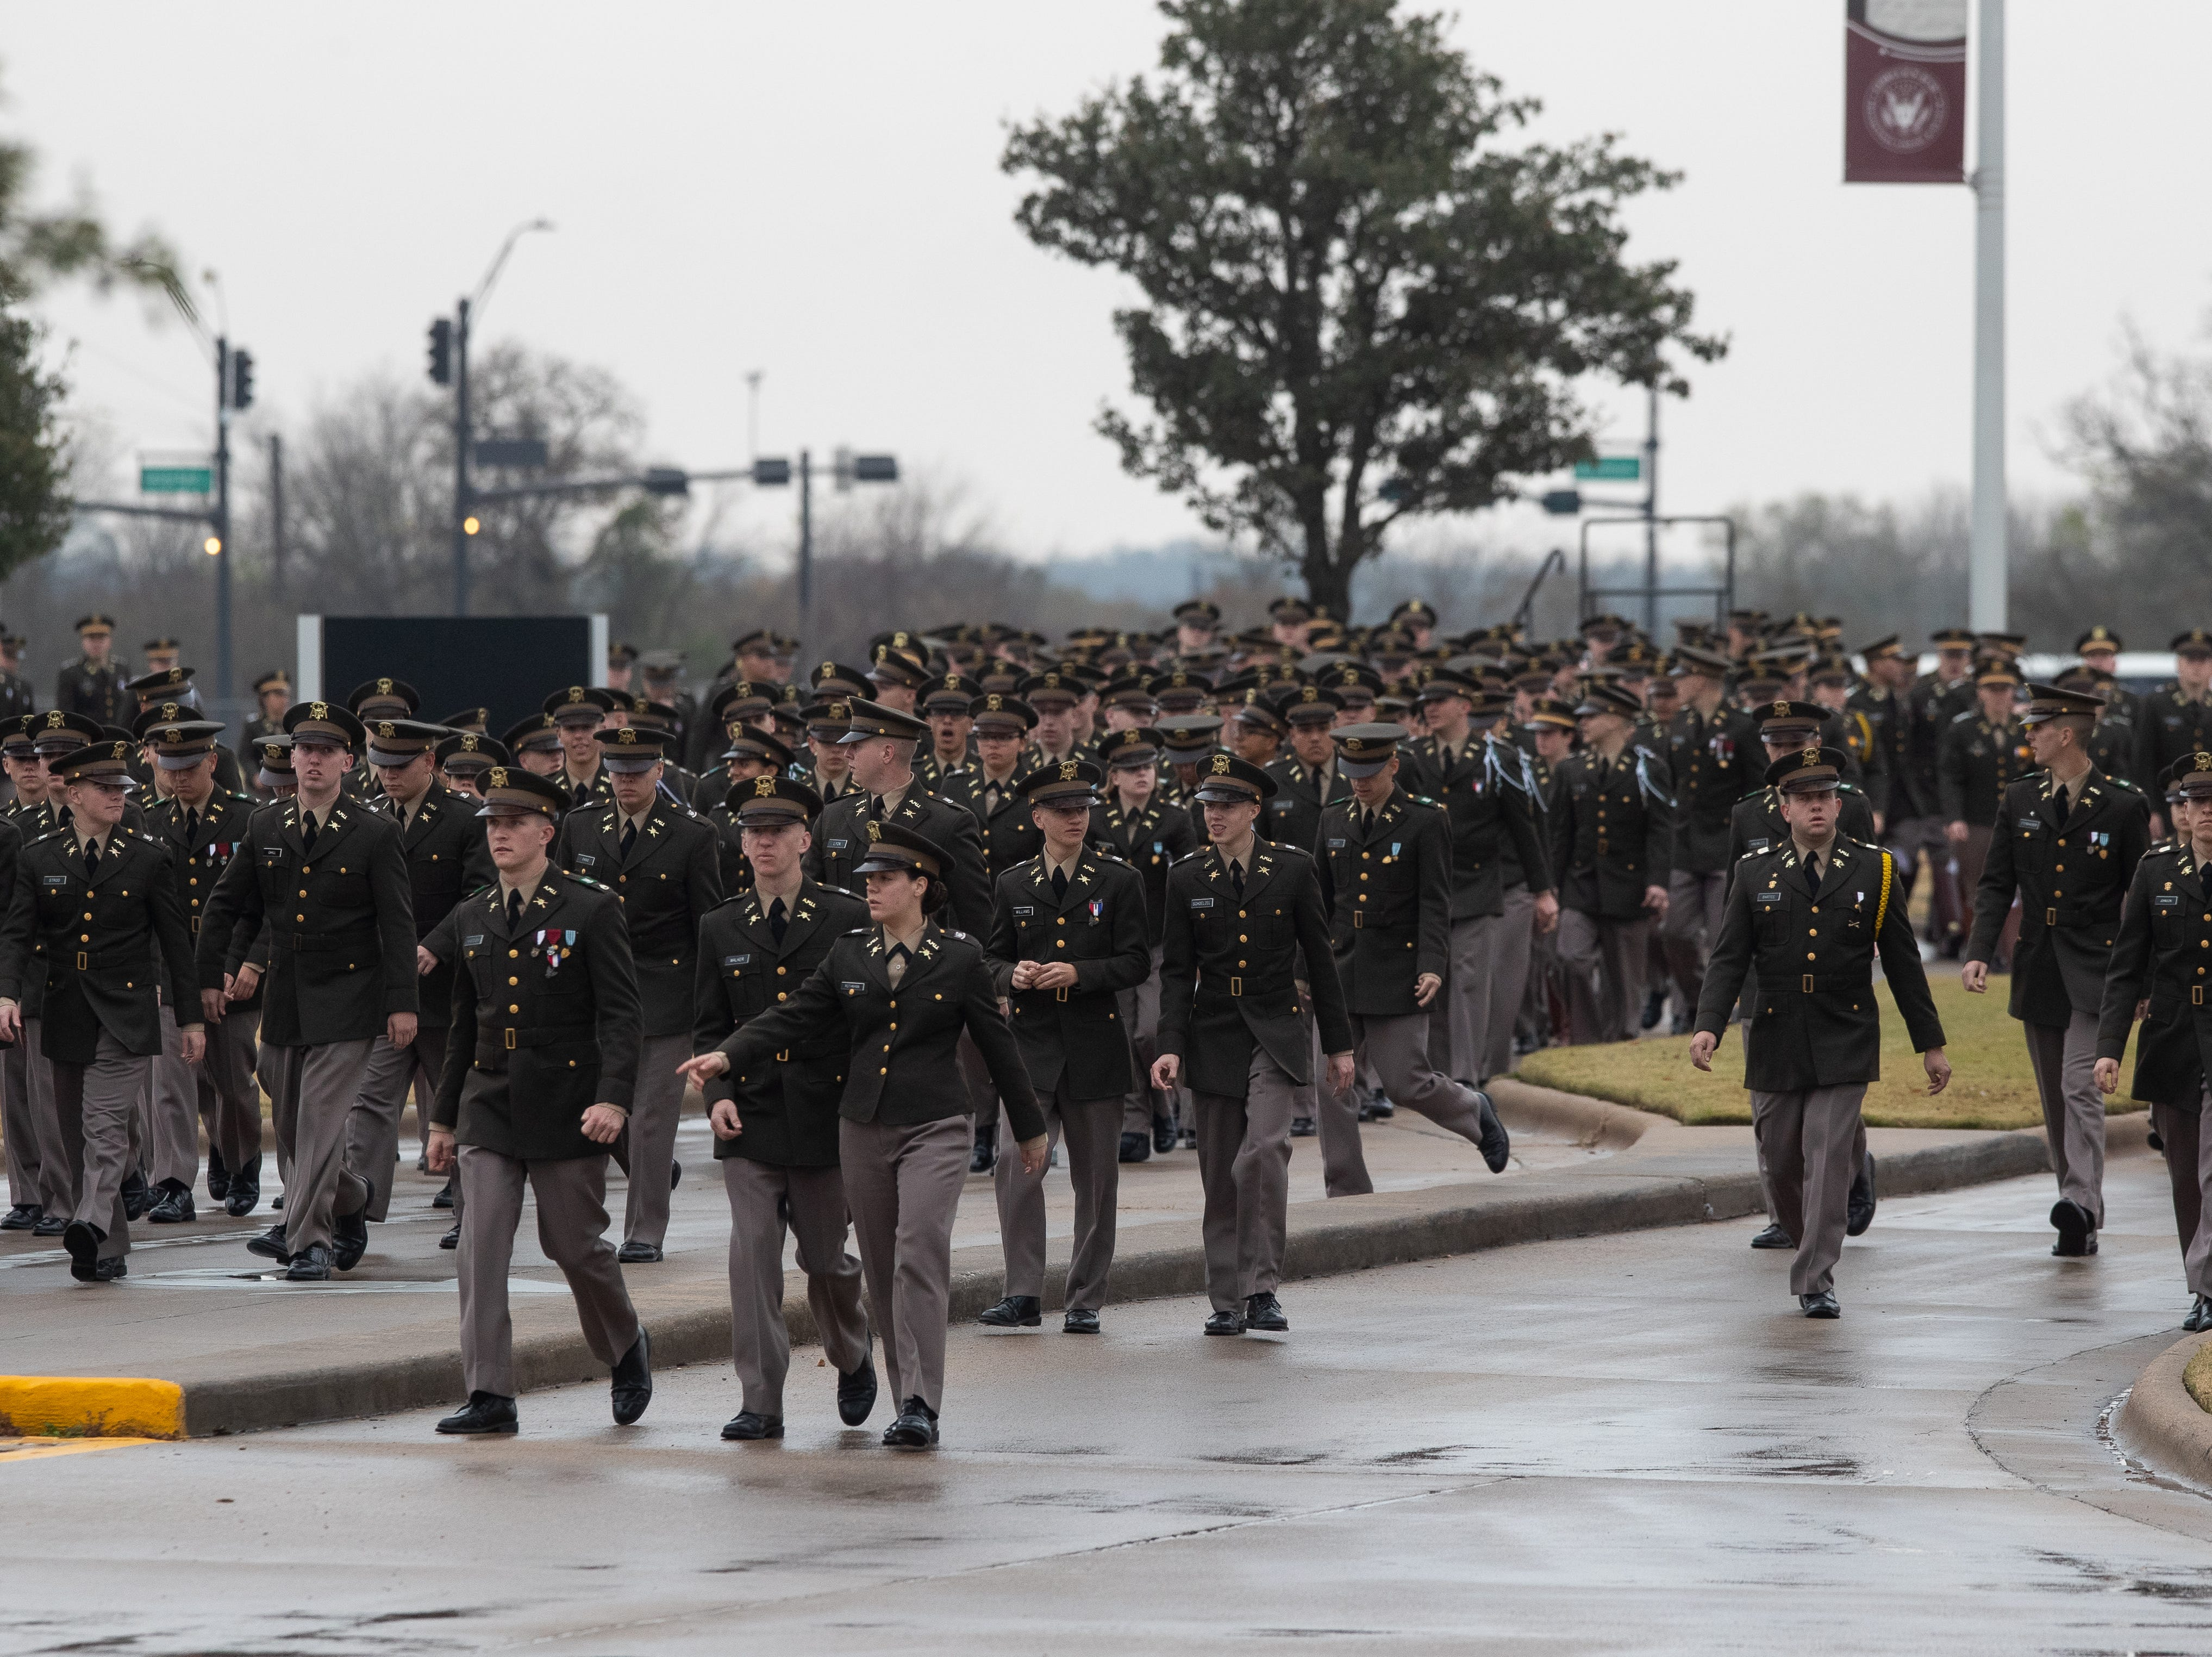 Texas A&M University Corps of Cadets walk down Barbara Bush Drive as they wait for the arrive and interment ceremony of the 41 President of the United States, George H.W. Bush at the George Bush Presidential Library & Museum in College Station on Thursday, Dec 6, 2018.